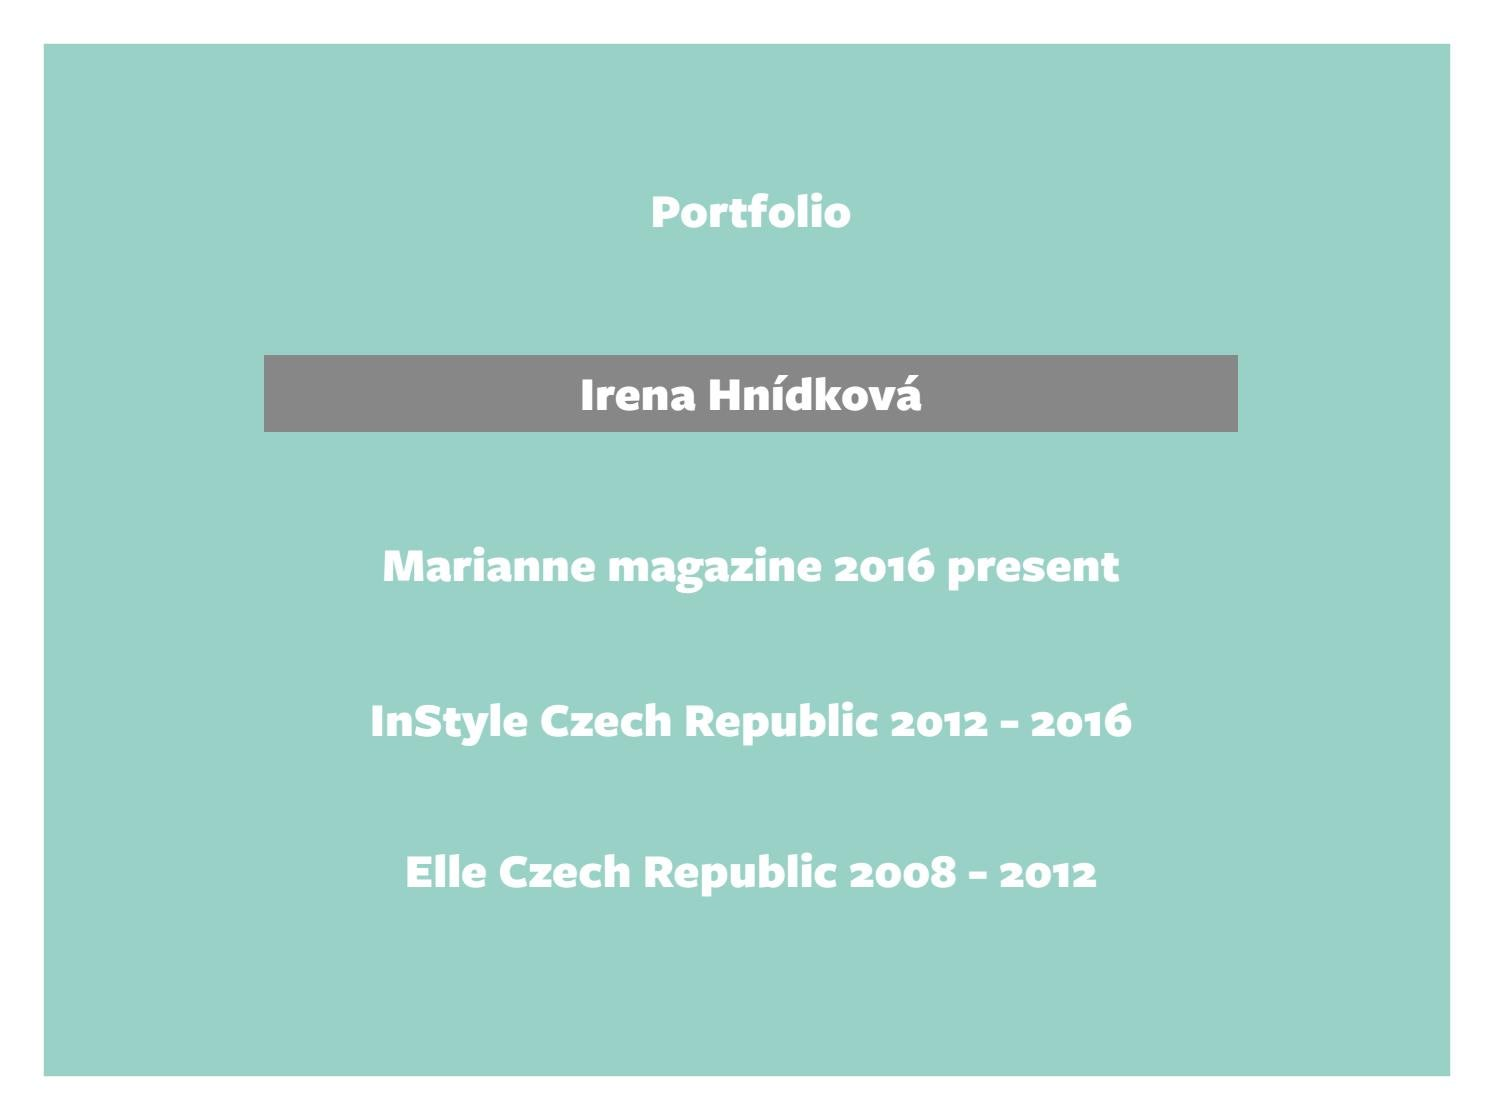 Portfolio sept 2016 by Irena Hnidkova - issuu 8d90596cc5